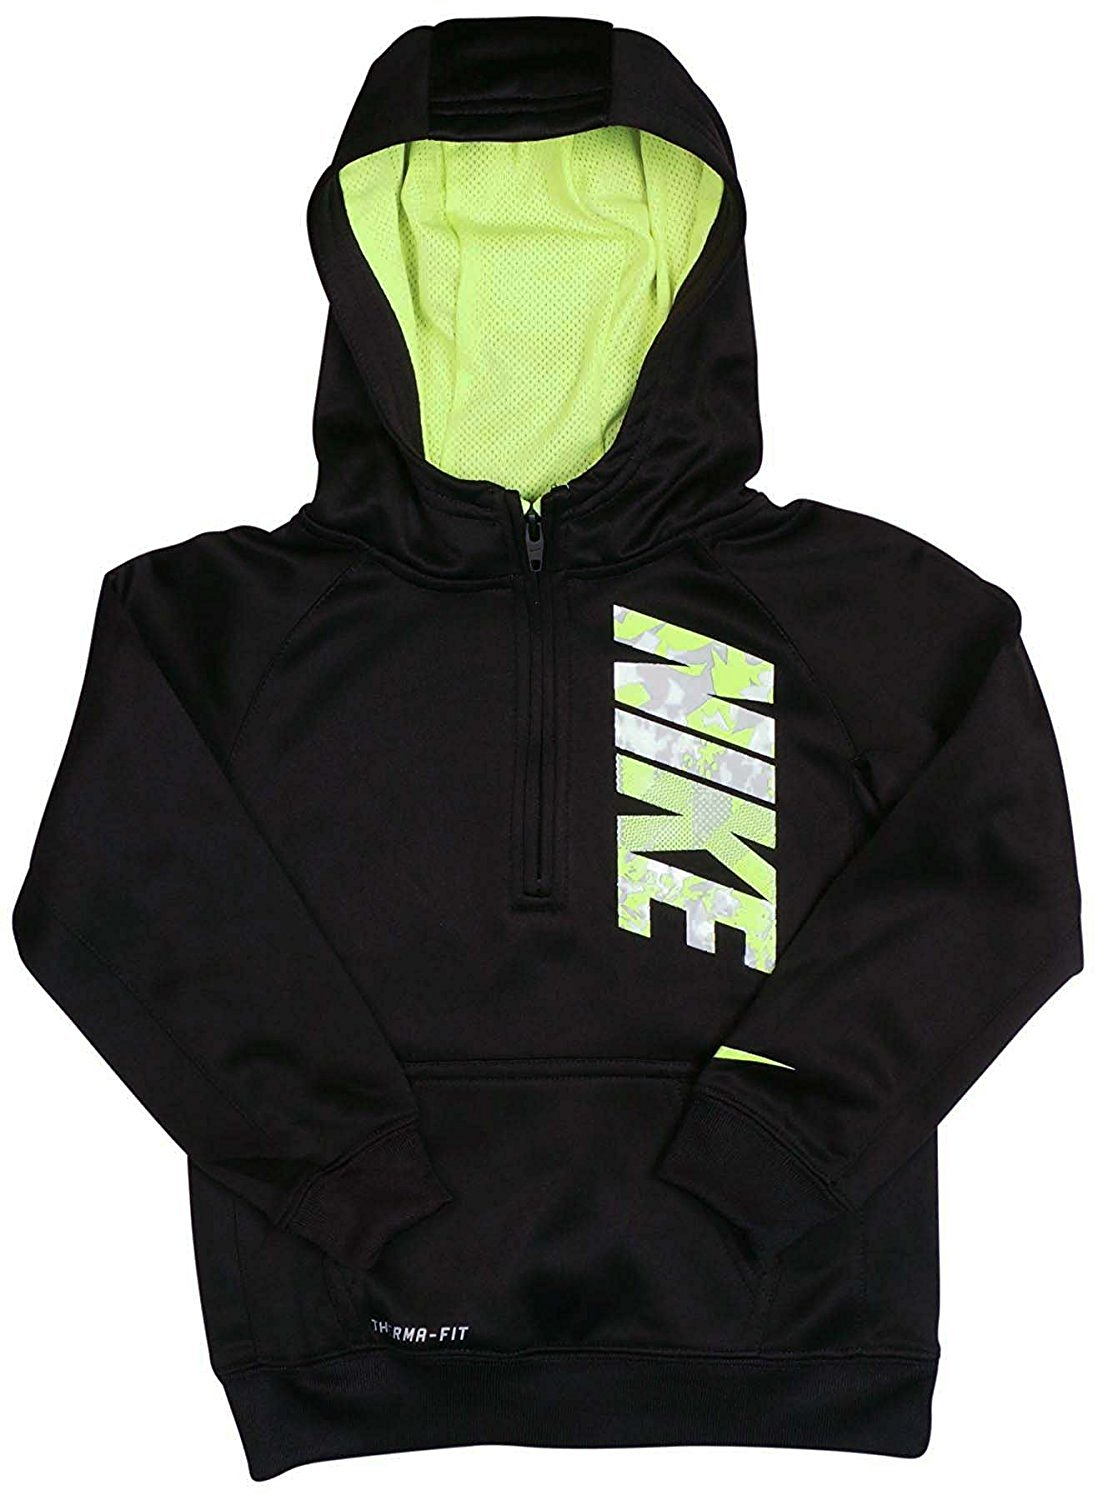 0127b74e47 Get Quotations · Nike Little Boy's Black Fleece Lined Therma-fit Pullover  Hoodie